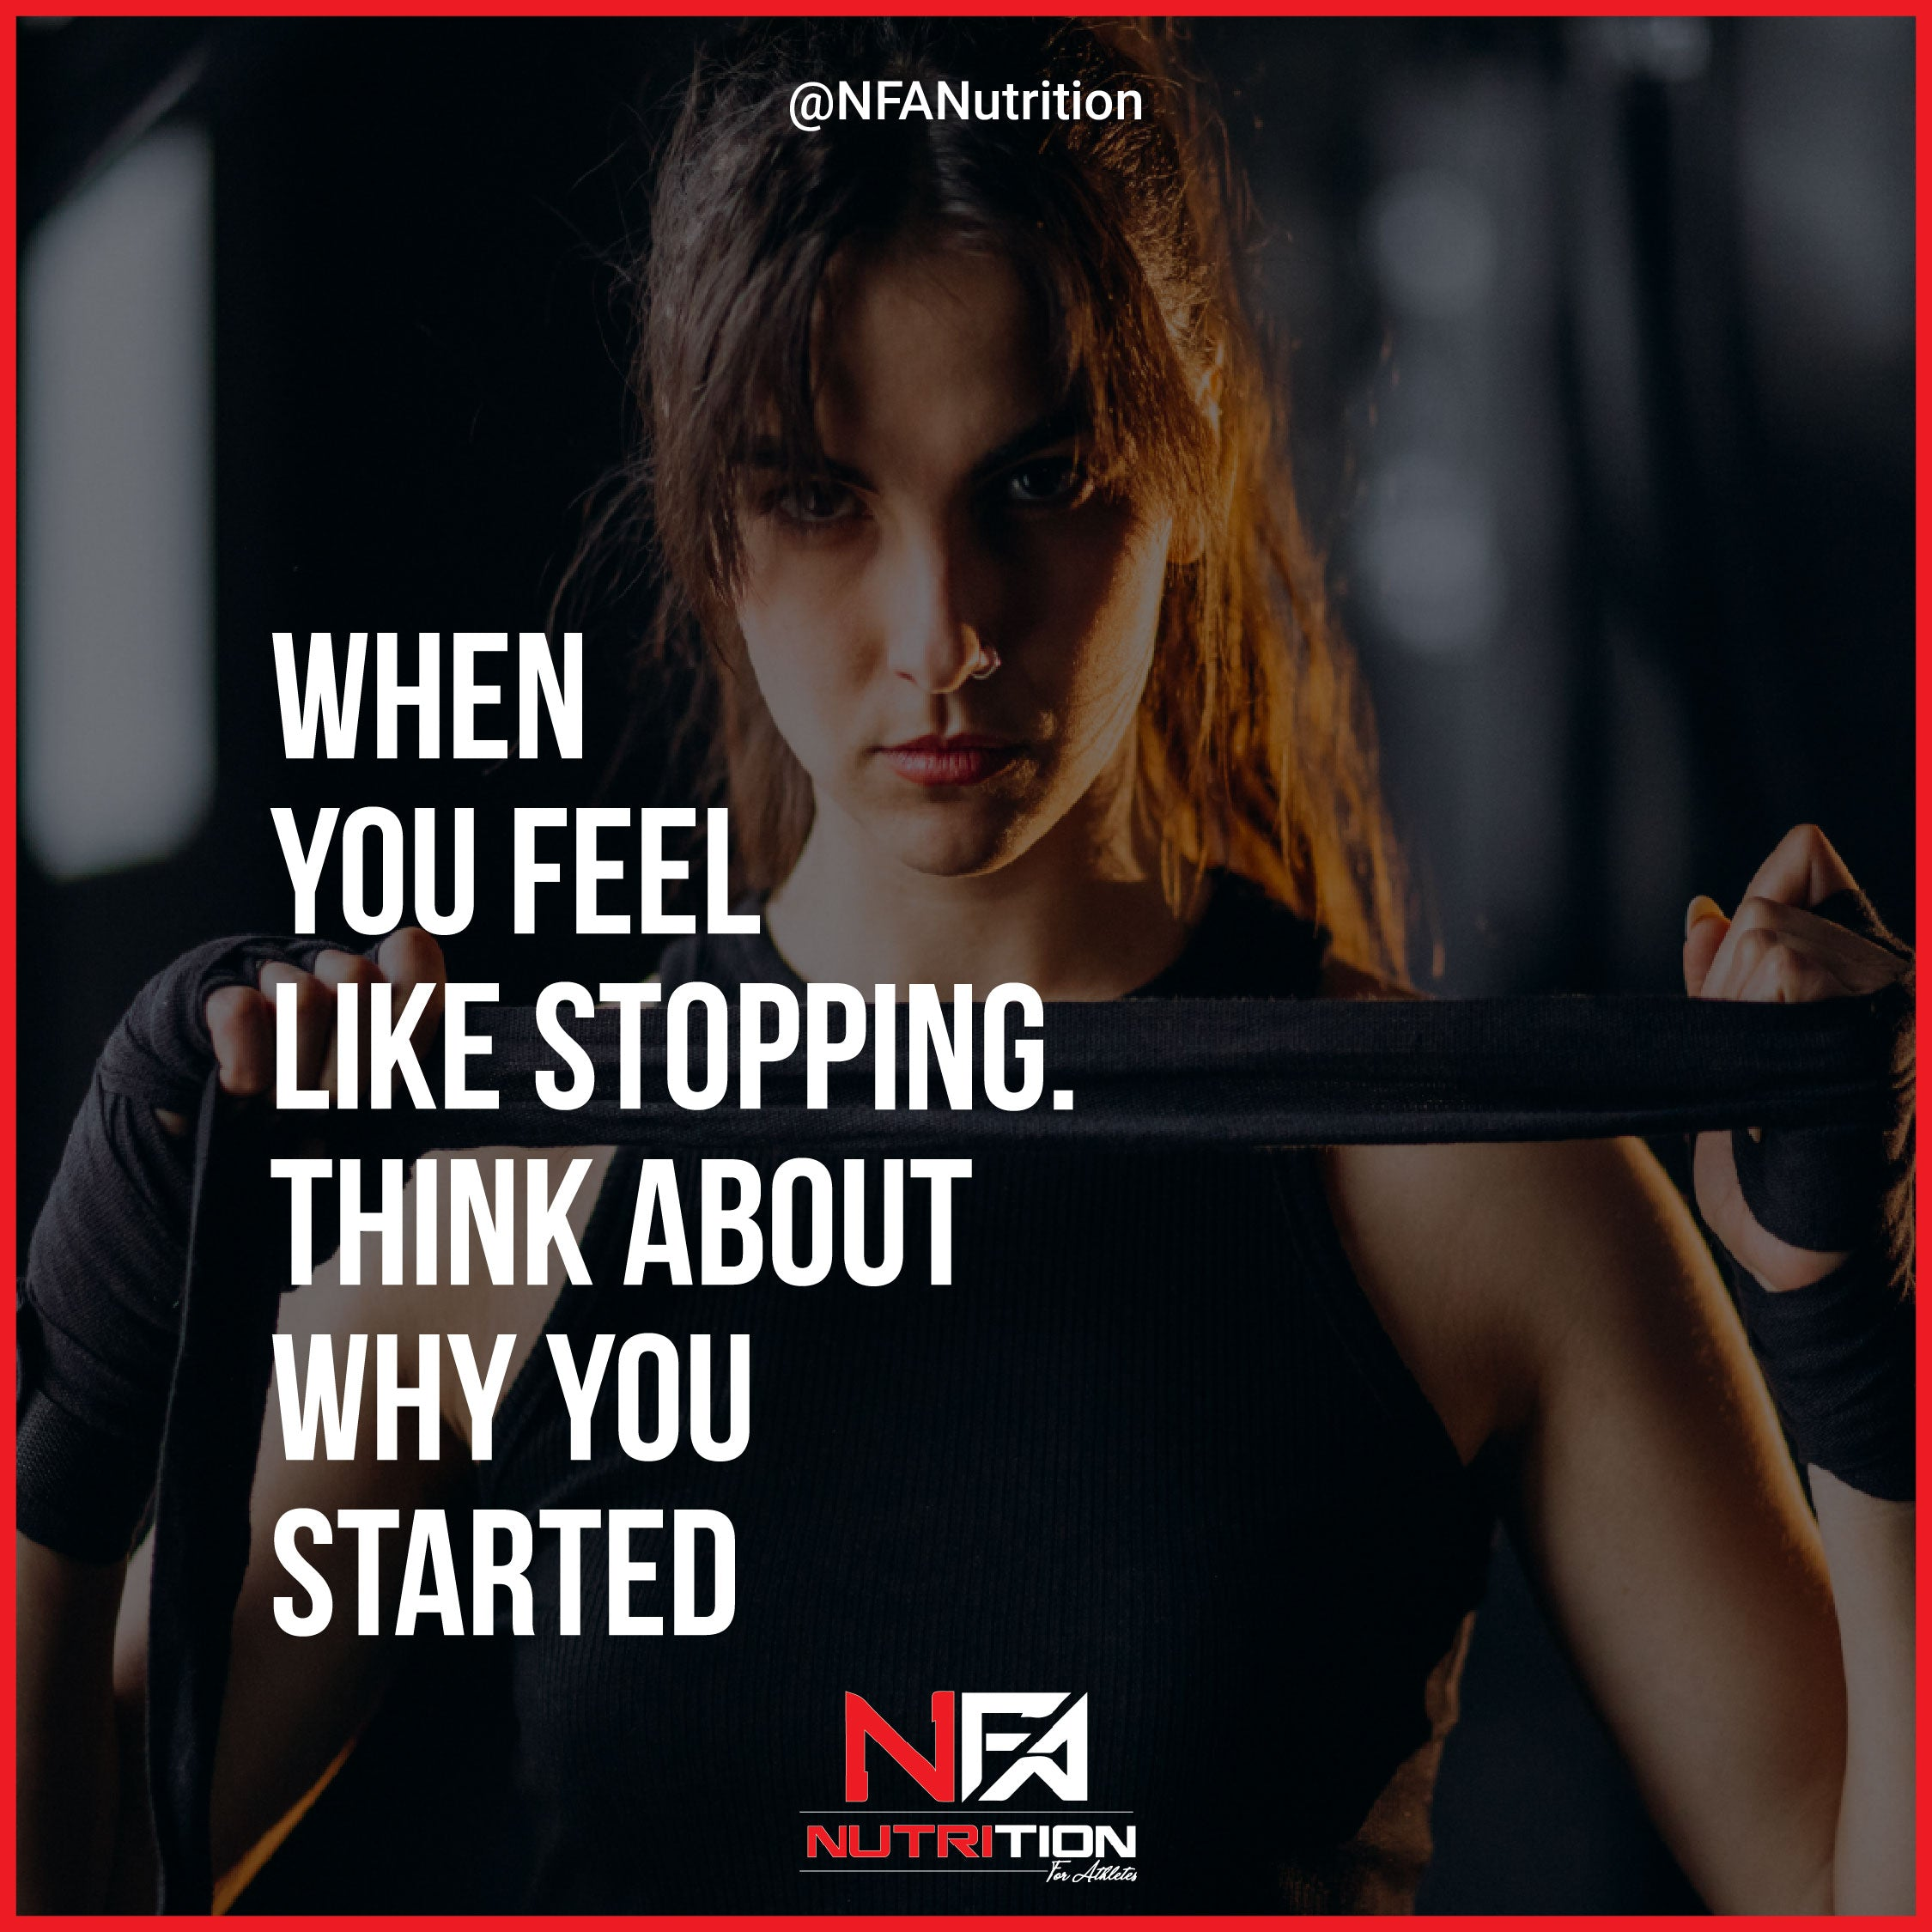 When you feel like stopping...